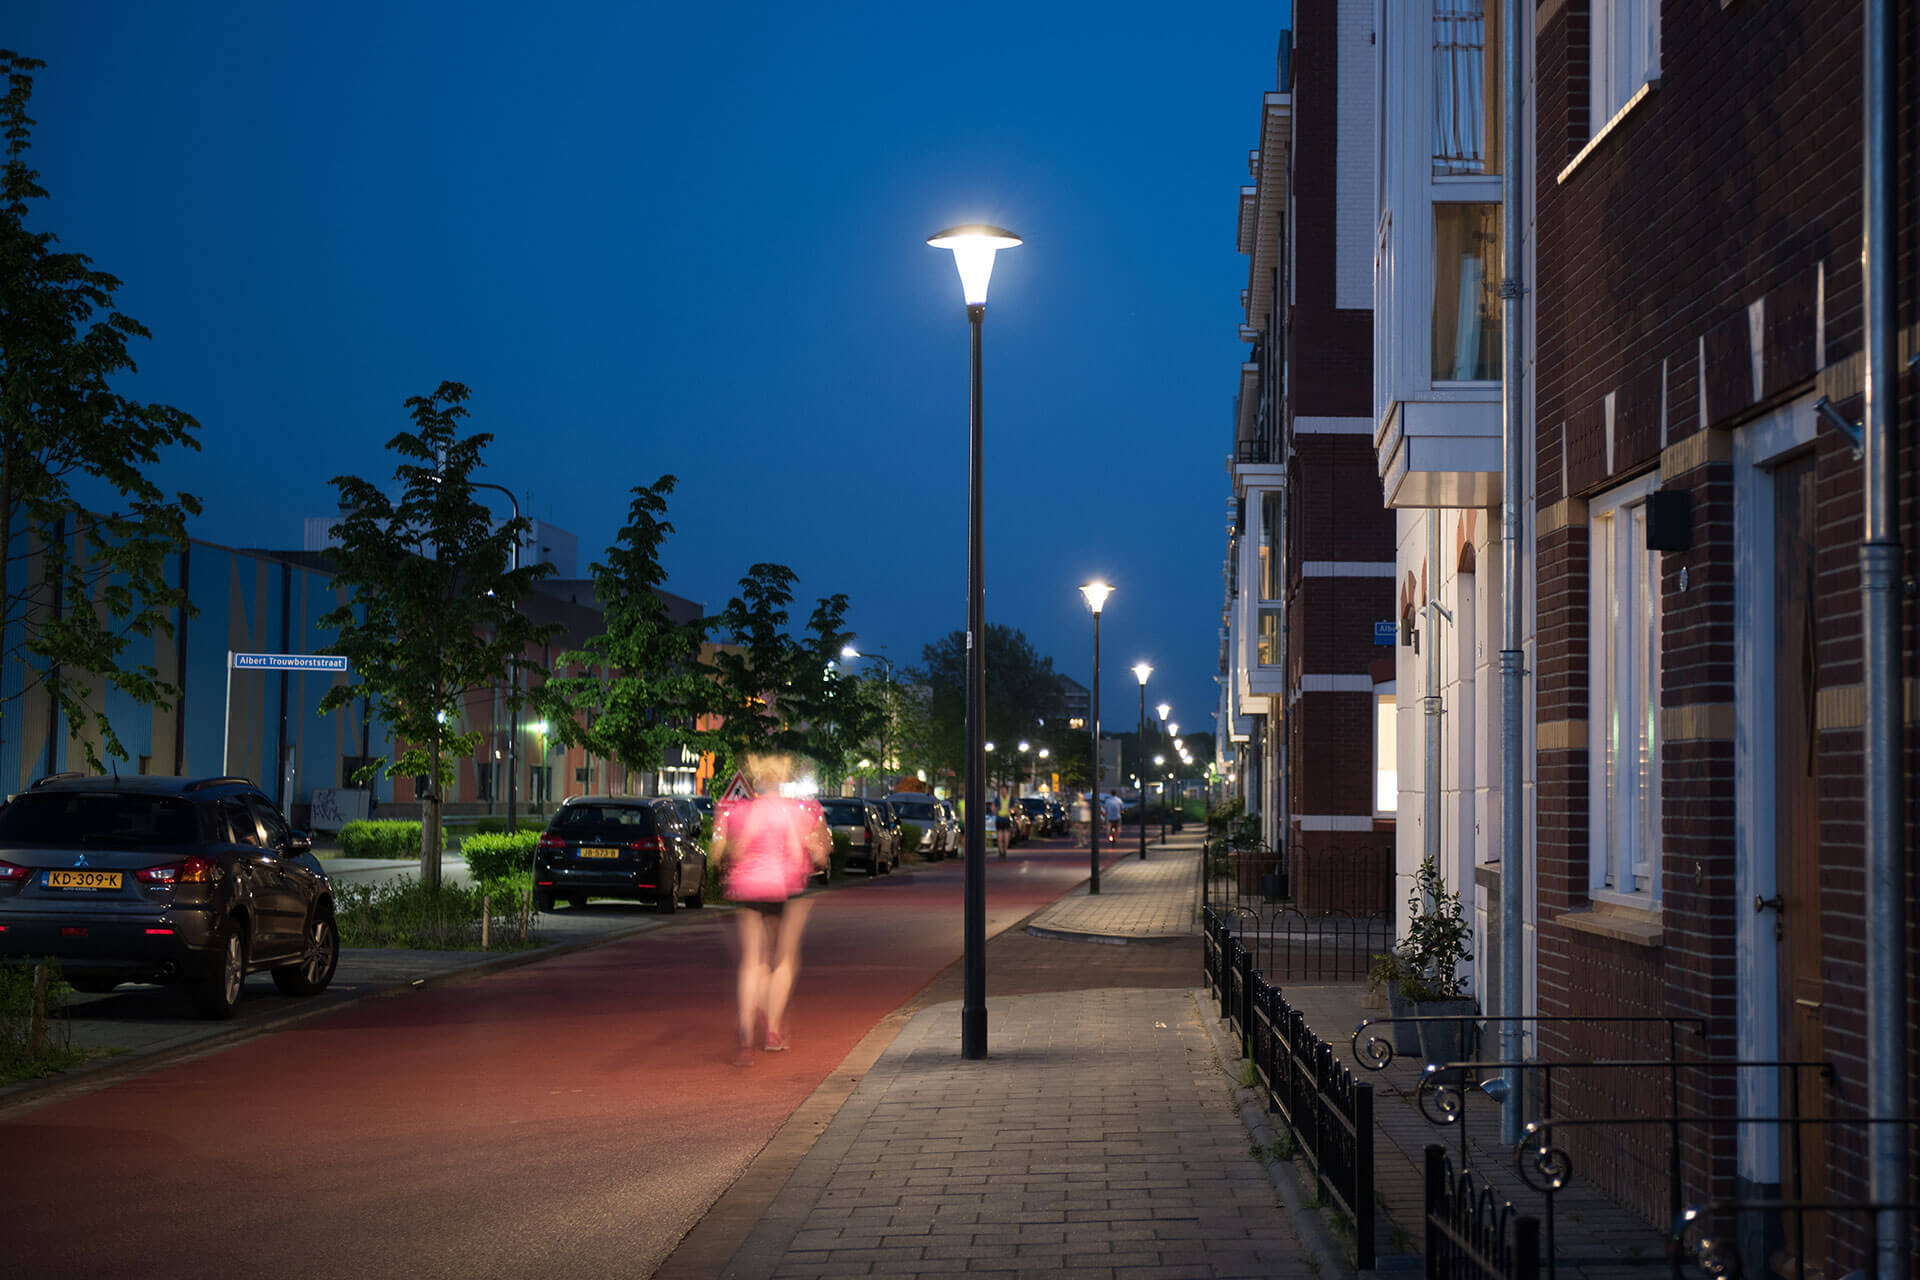 Pilzeo urban luminaire ensures visual comfort so people feel safe and at ease to go about their activities at night